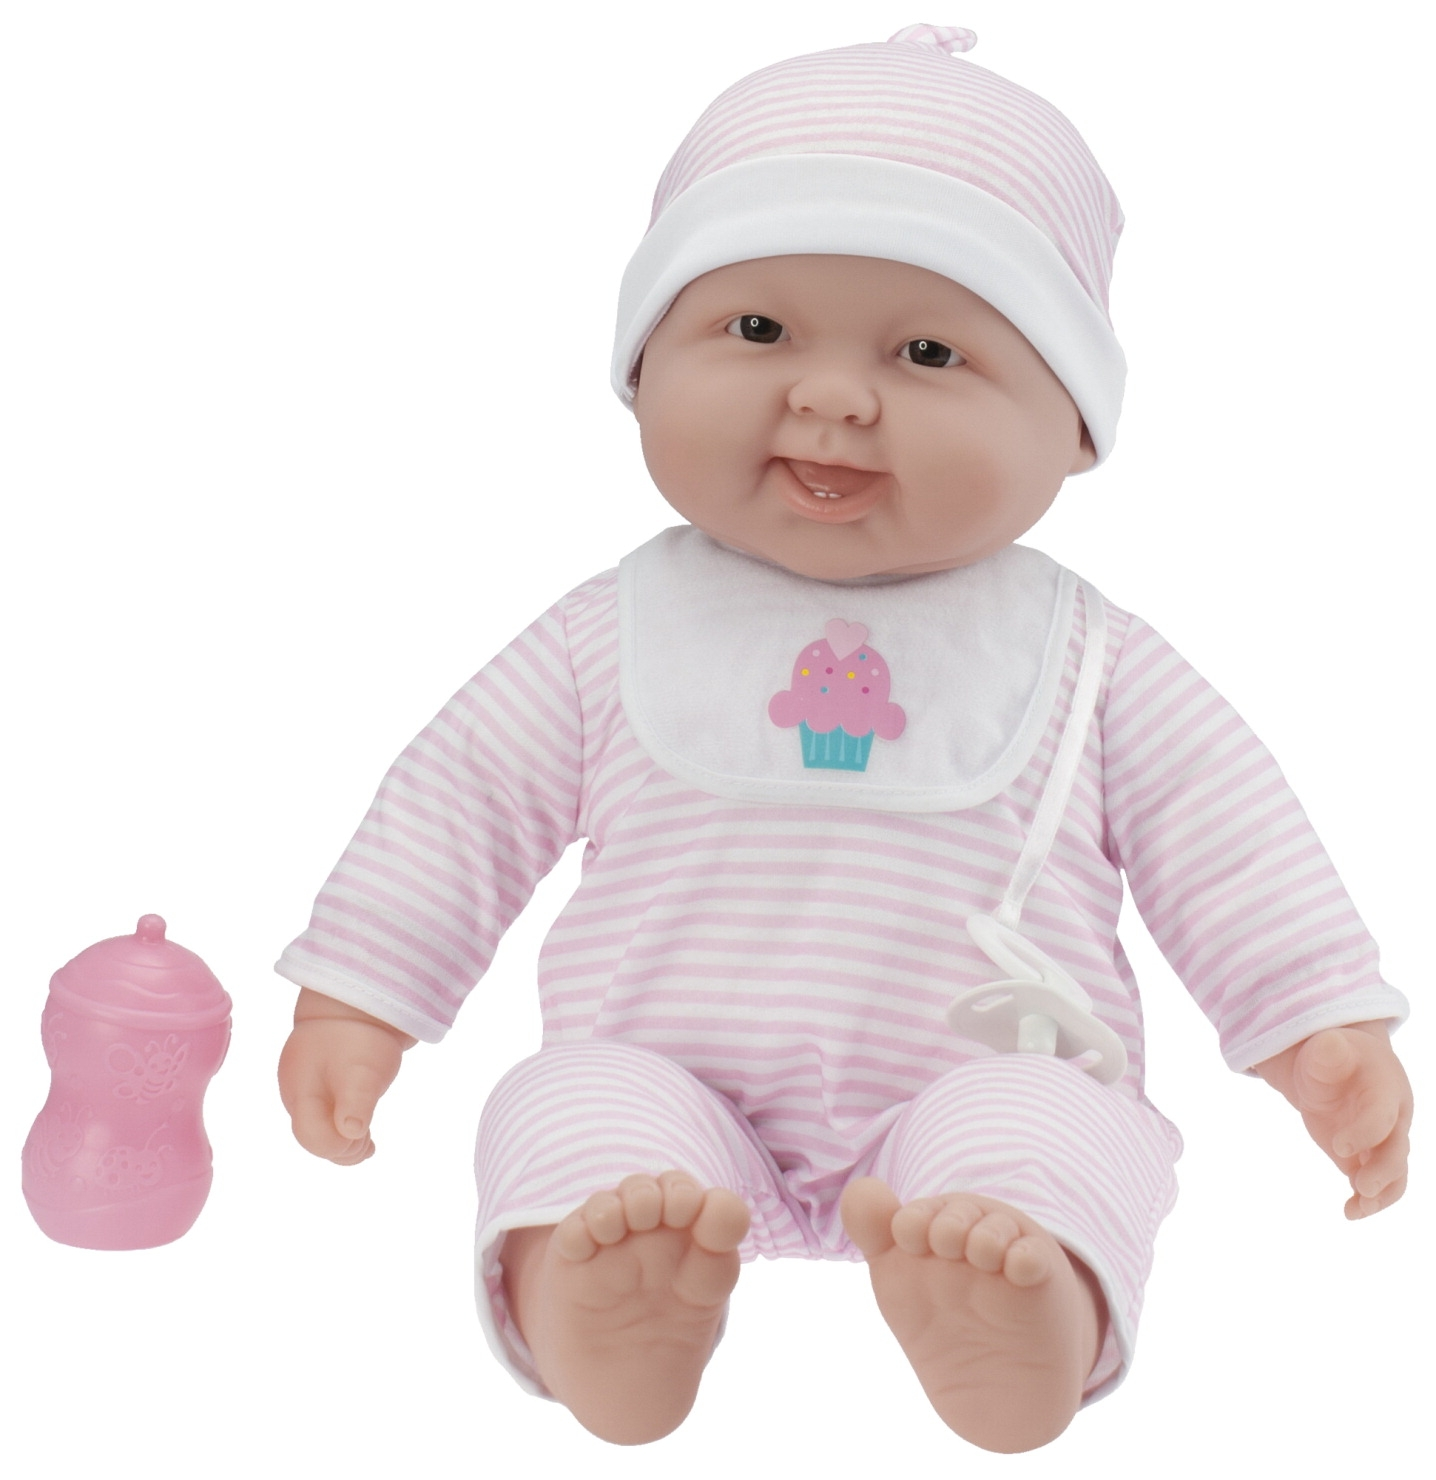 Lots To Cuddle Soft Body Doll; Caucasian - 1288981 - Toys Dramatic Play 1288981